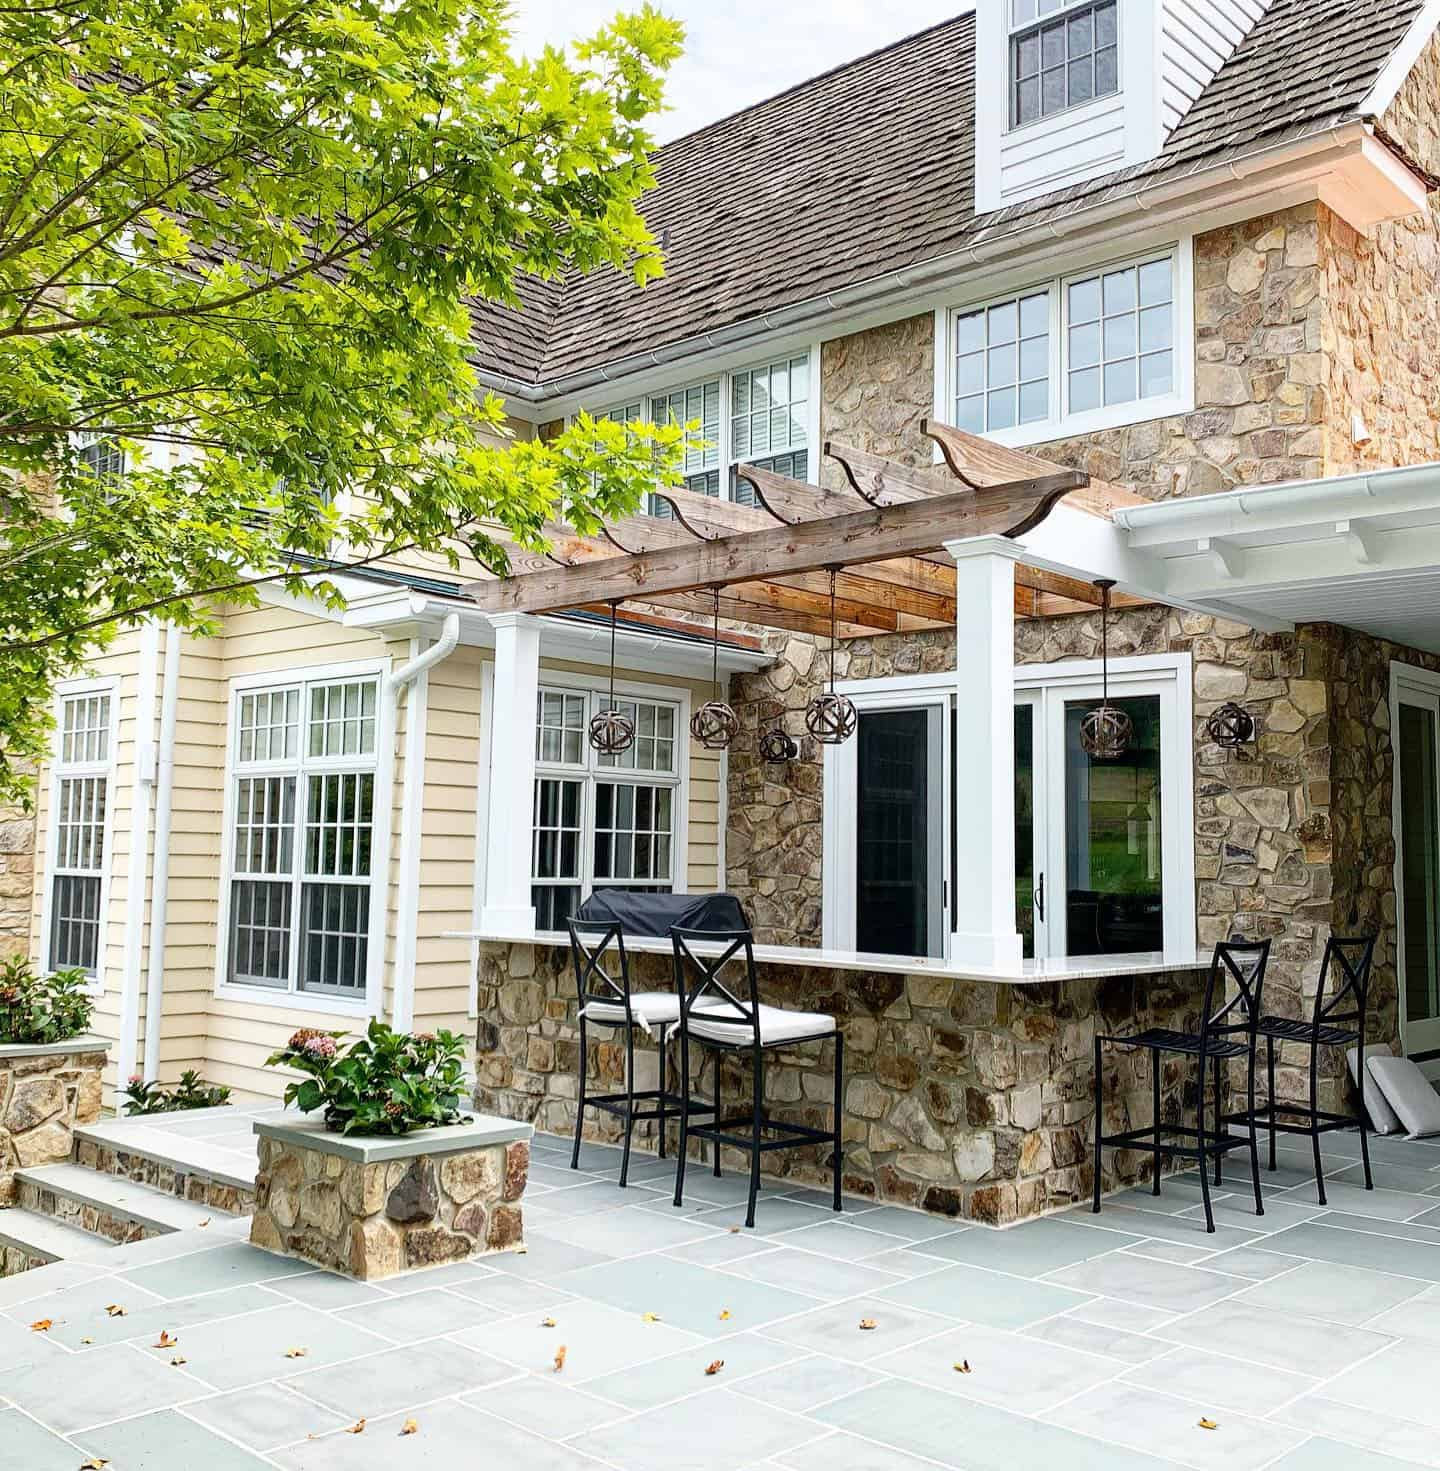 Structural Engineering in Bucks County PA